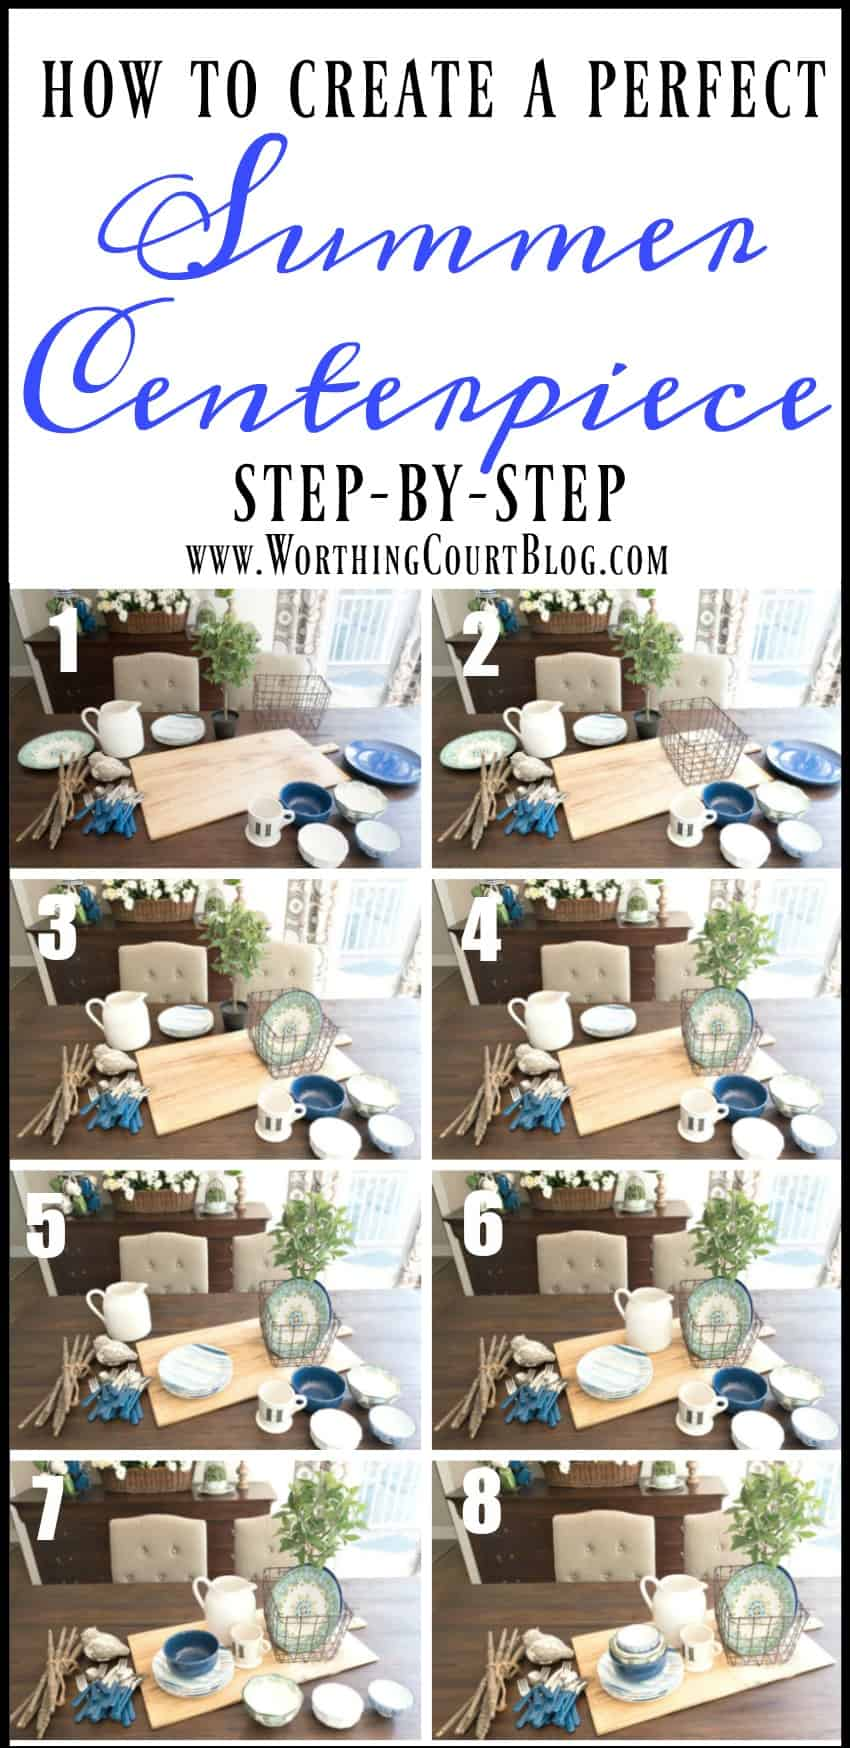 a step-by-step photo guide showing how to create a farmhouse style summer centerpiece || Worthing Court